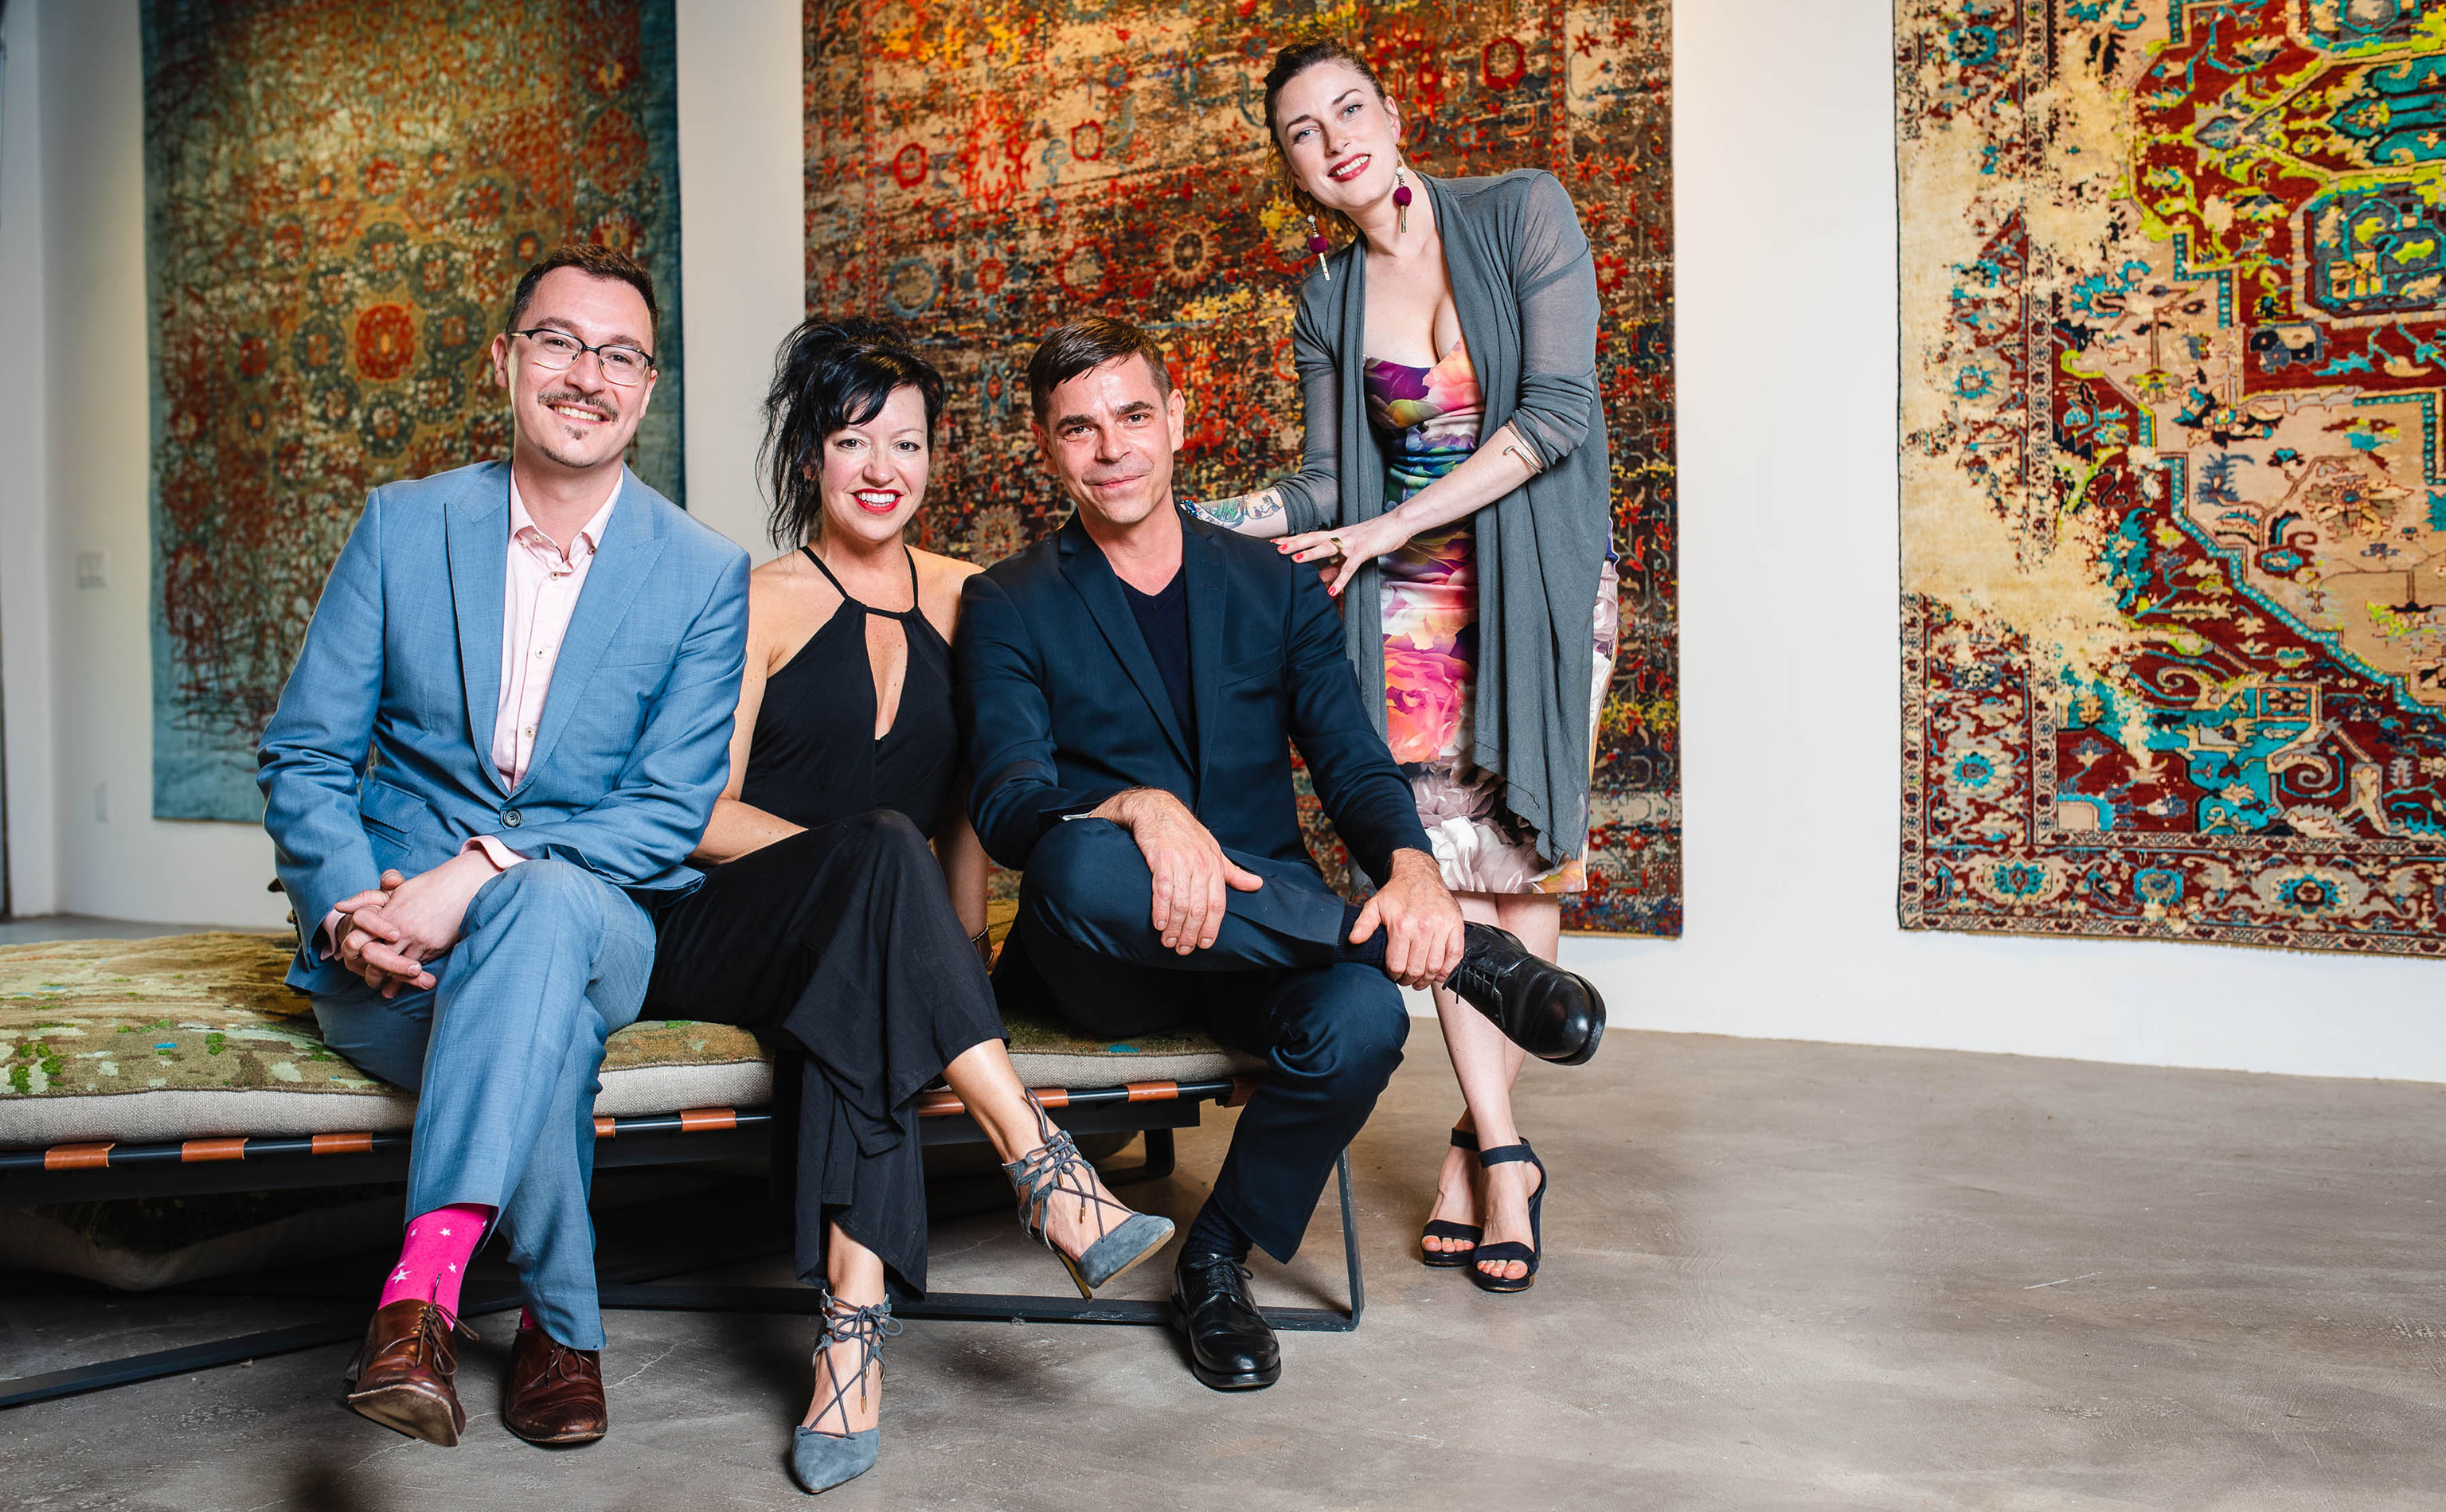 And this is why you hire a professional! Yvan Semenowycz, Jenni Finlay, Jan Kath, and Robyn Waffle (left ot right) shown properly poised in the official photograph shot by photographer Nancy Kim just as the opening party for Finlay and Kath's new Jan Kath Toronto showroom got underway on Thursday, 10 May 2018.   Image courtesy of Finlay and Kath.